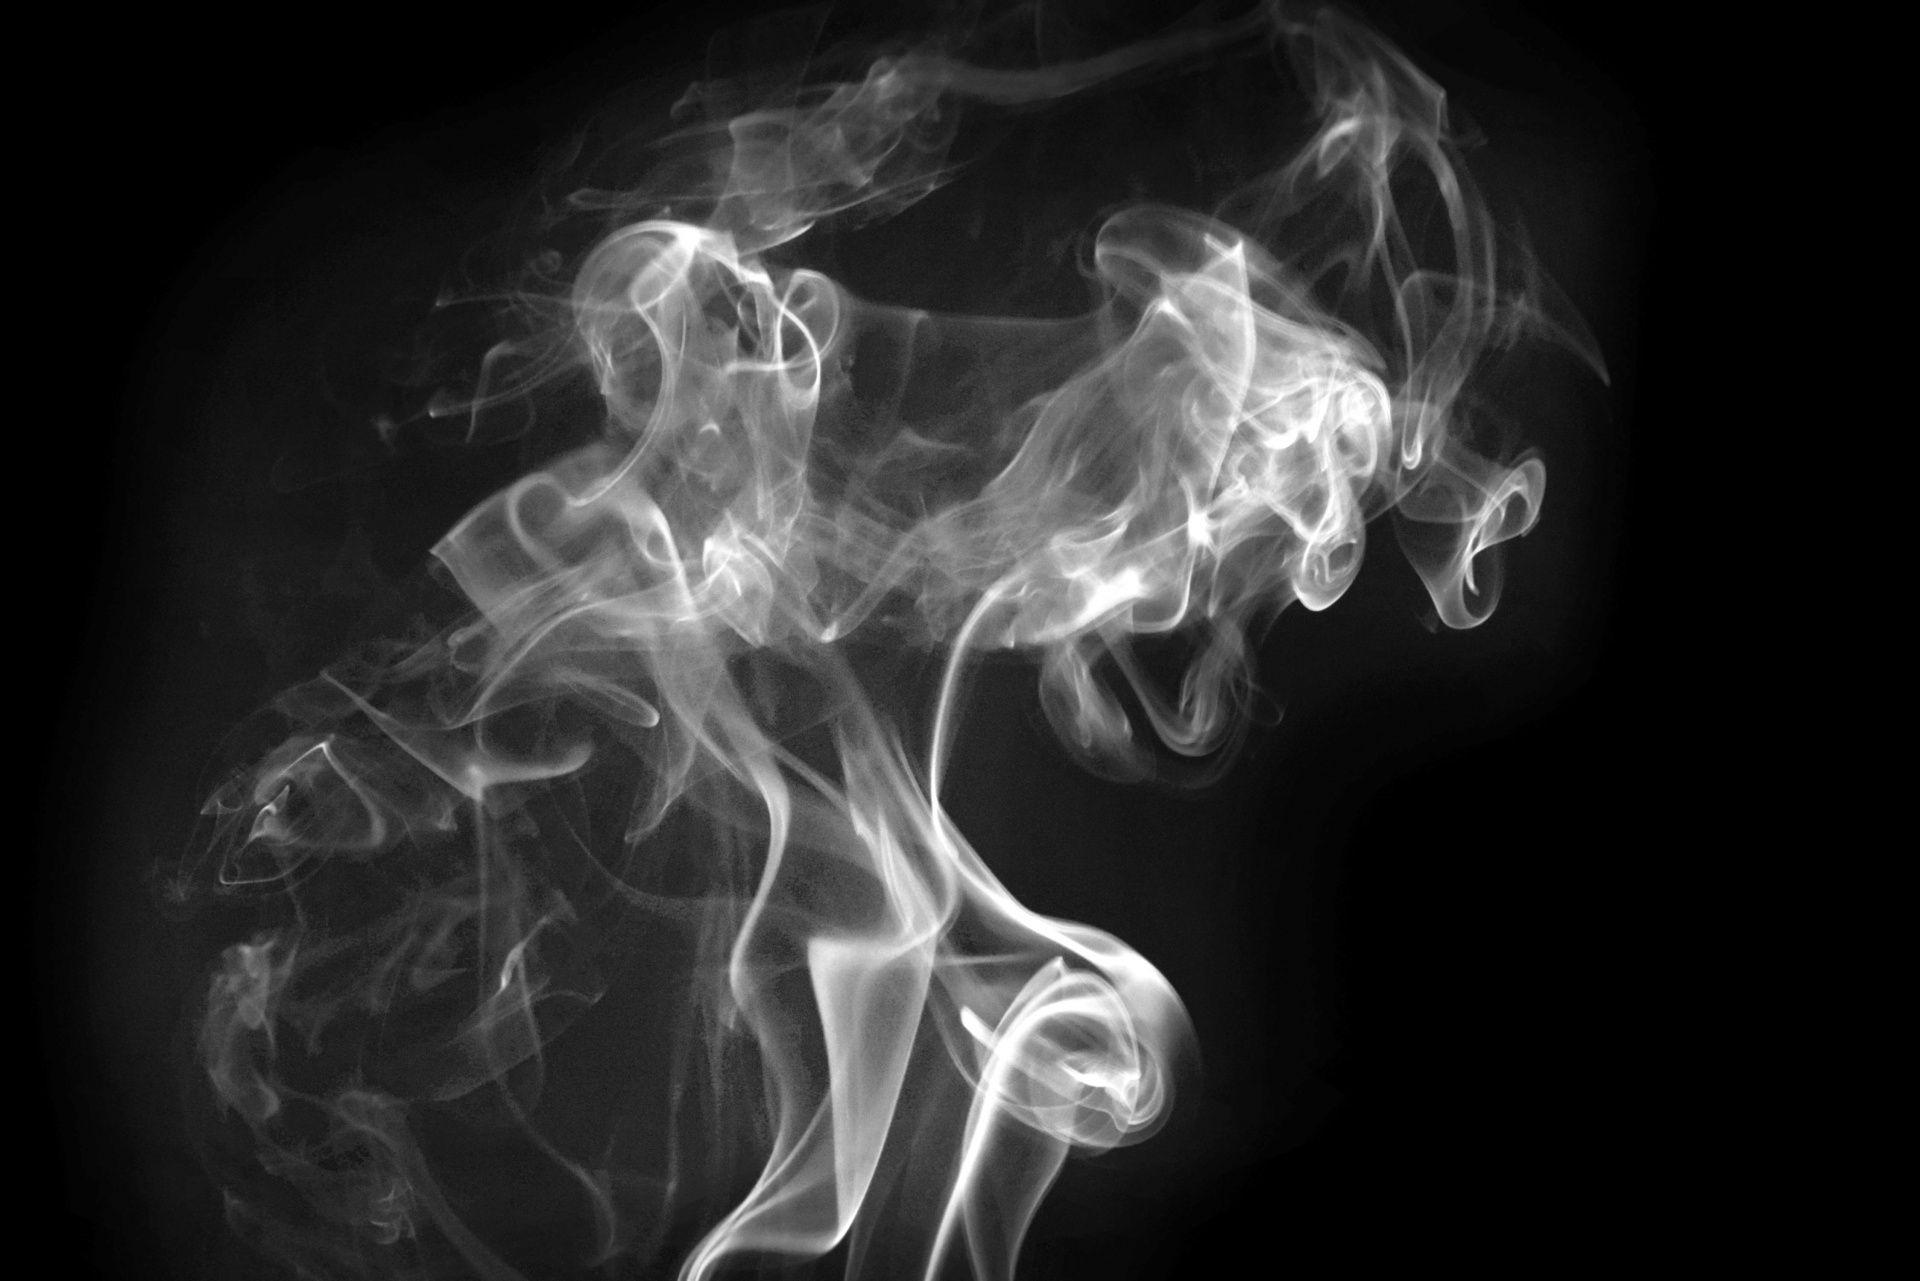 Silhouette Girl Real Wallpaper Smoke 24 Free Stock Photo Public Domain Pictures